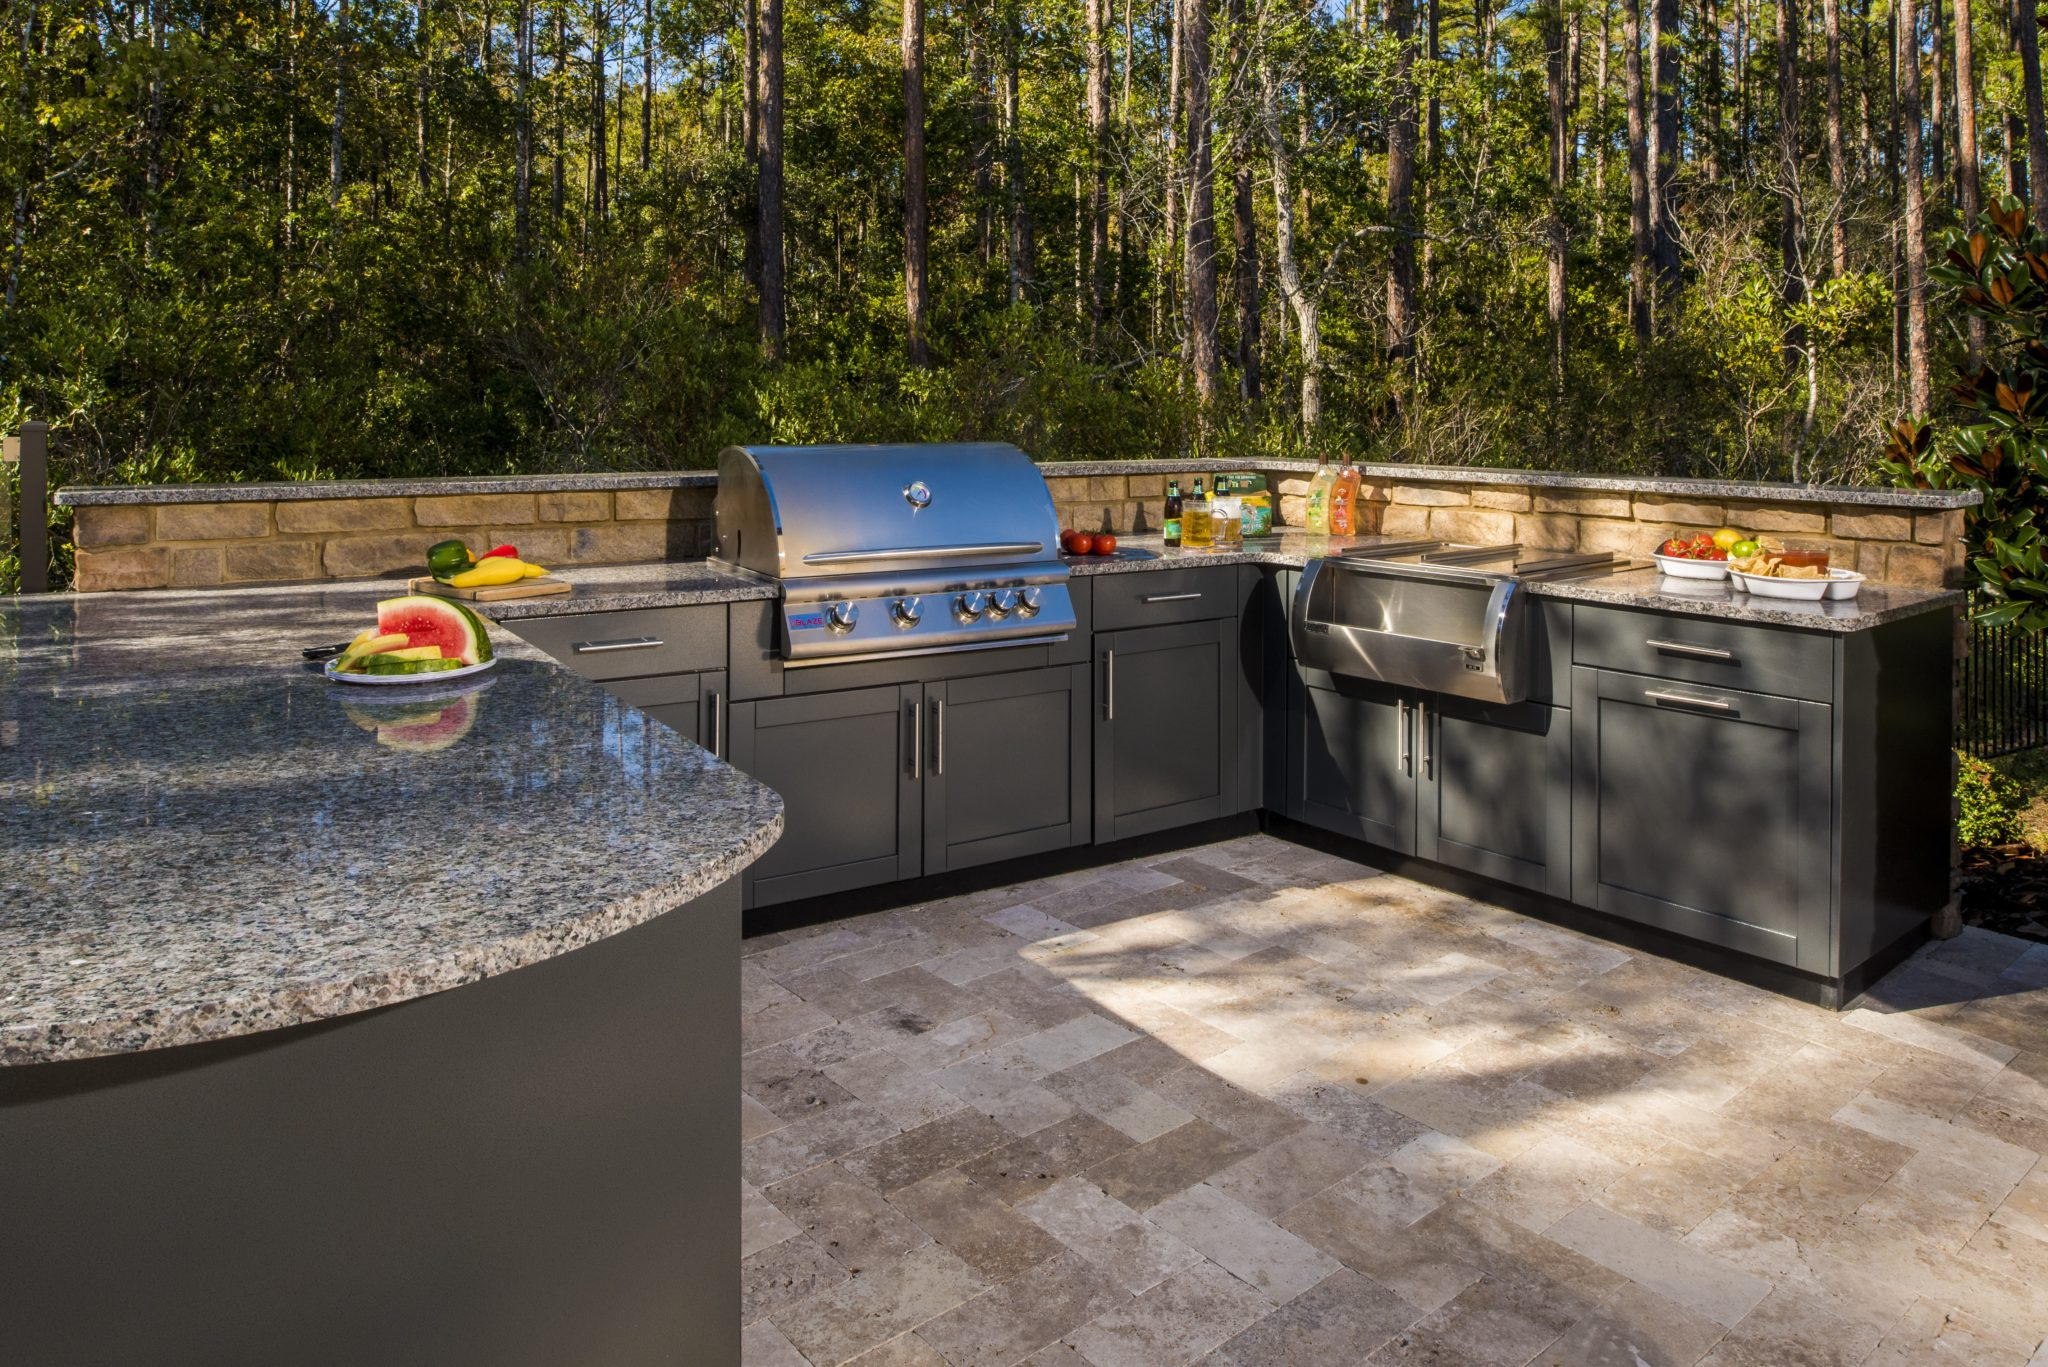 Granite Countertops Medford Oregon Outdoor Kitchen Designs Ideas And Plans For Any Home Danver